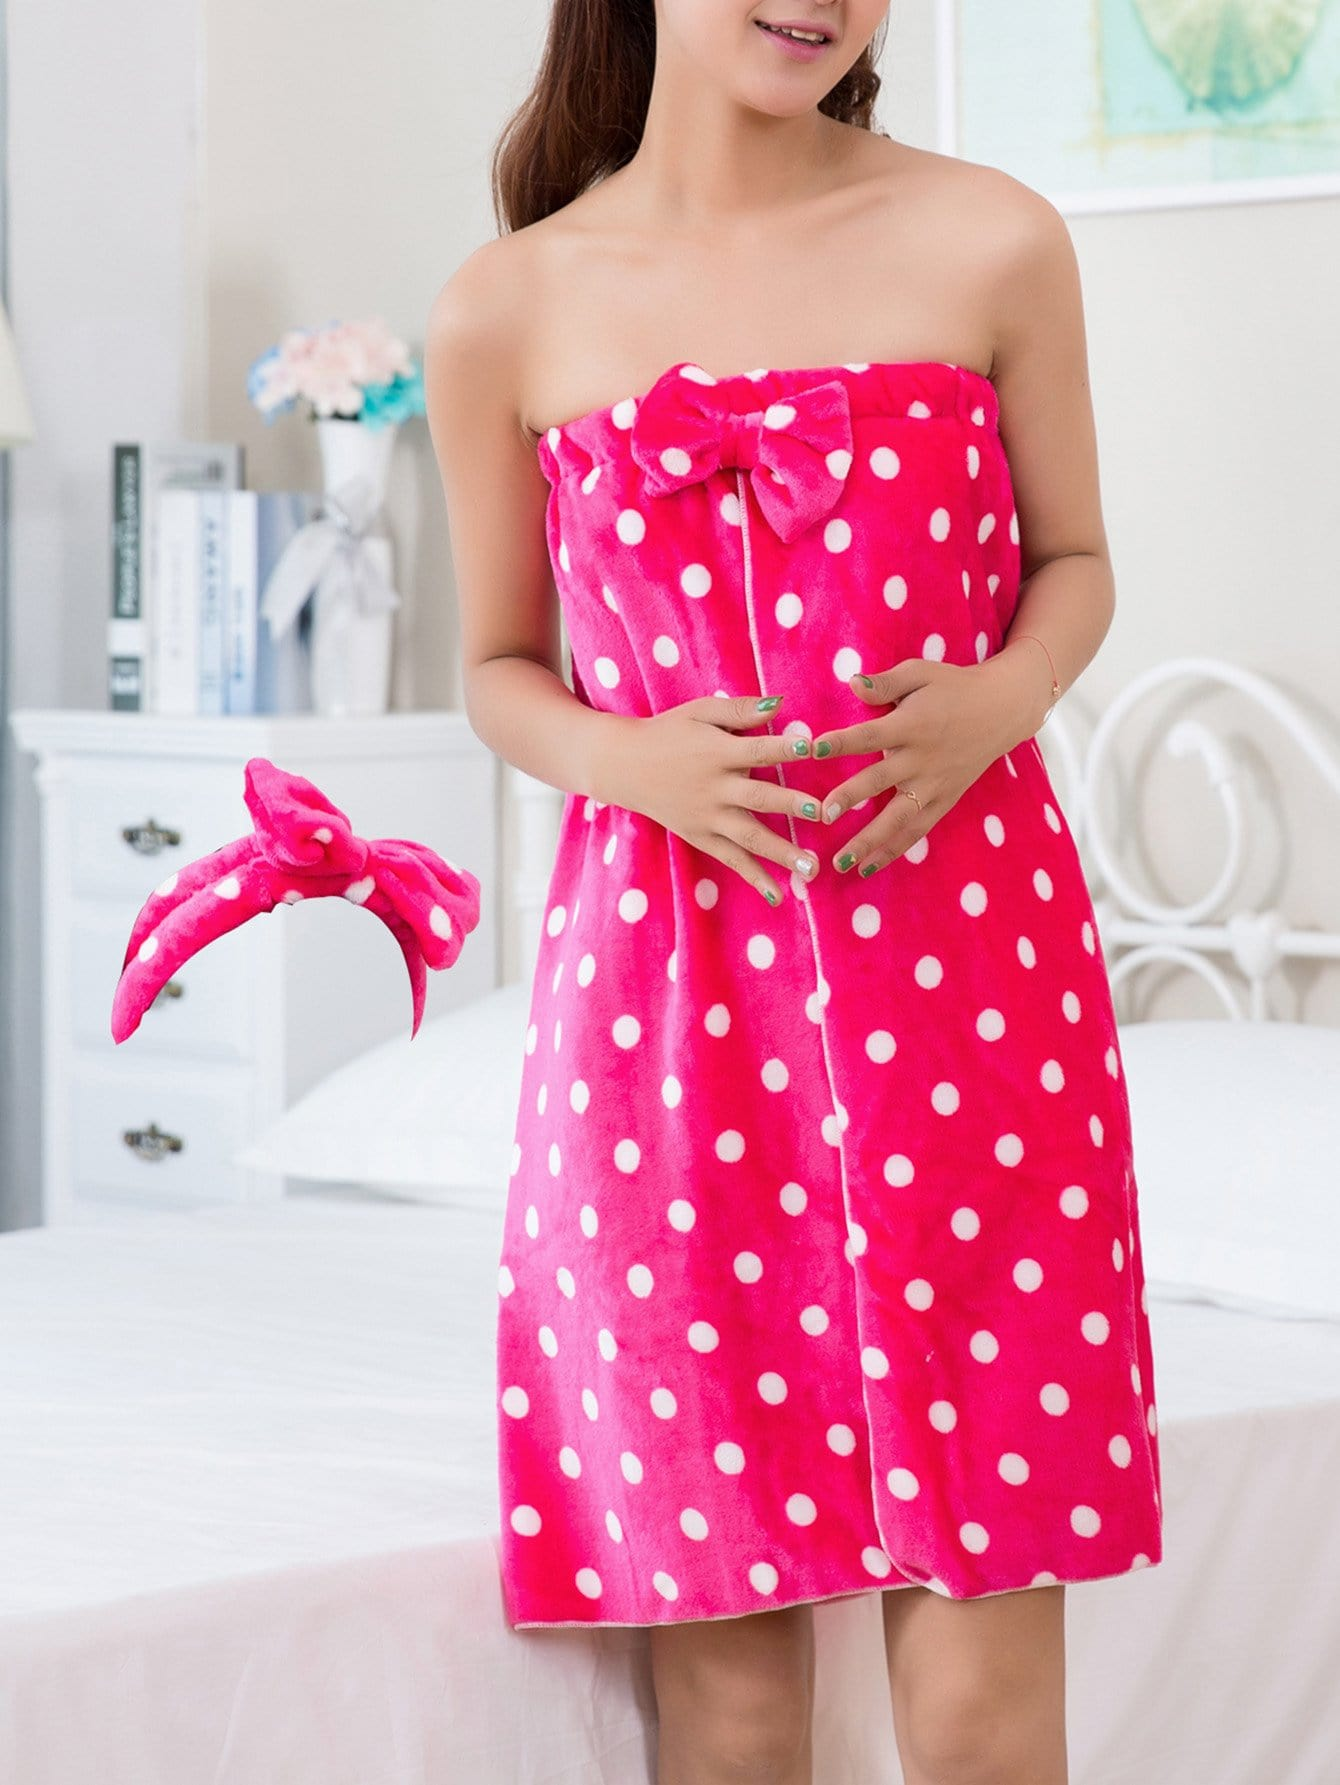 Polka Dot Bath Wrap With Headband